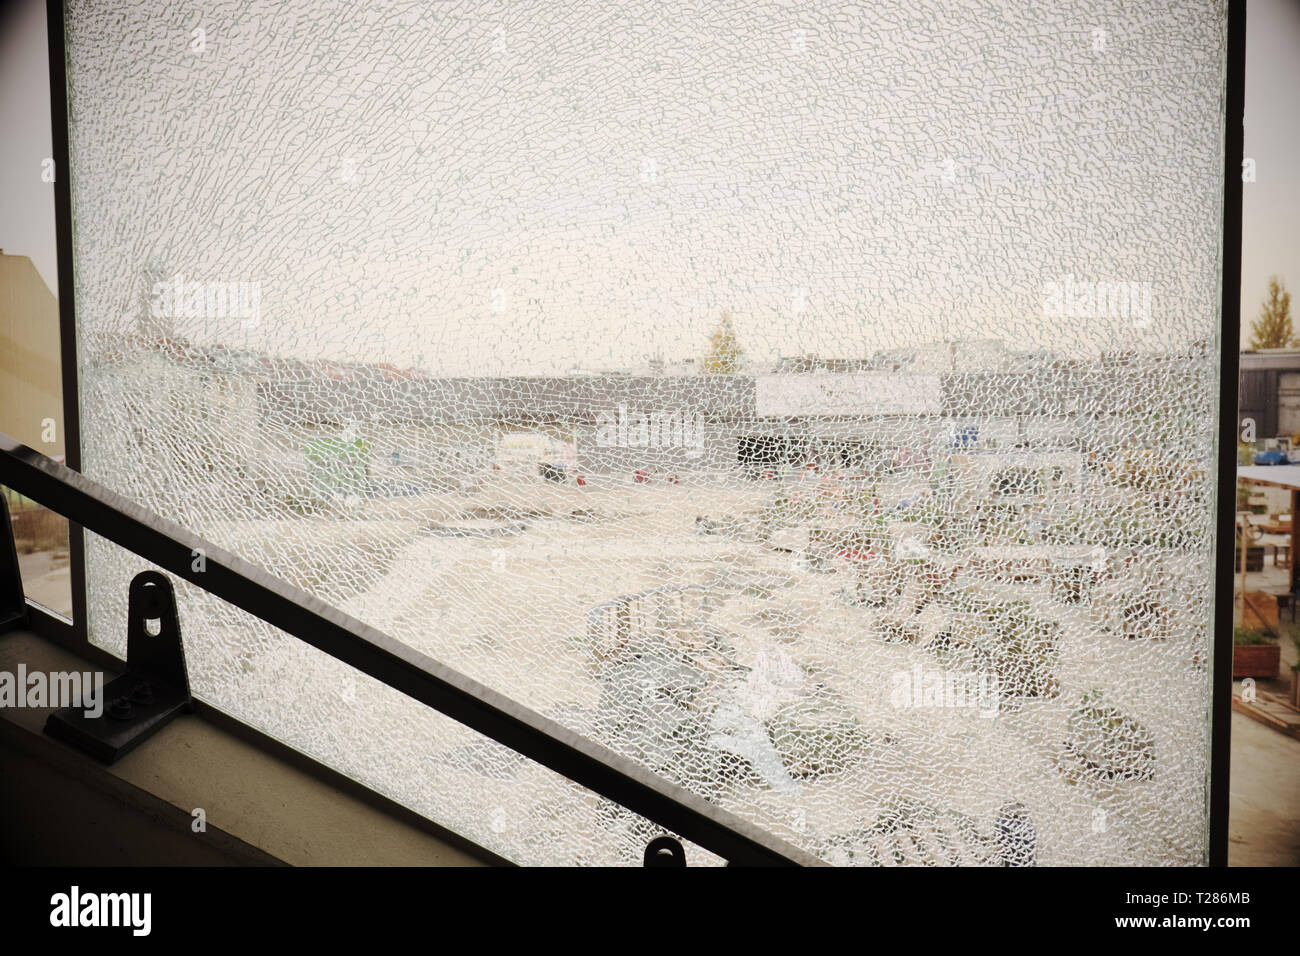 Broken smashed window pane in urban location - Stock Image